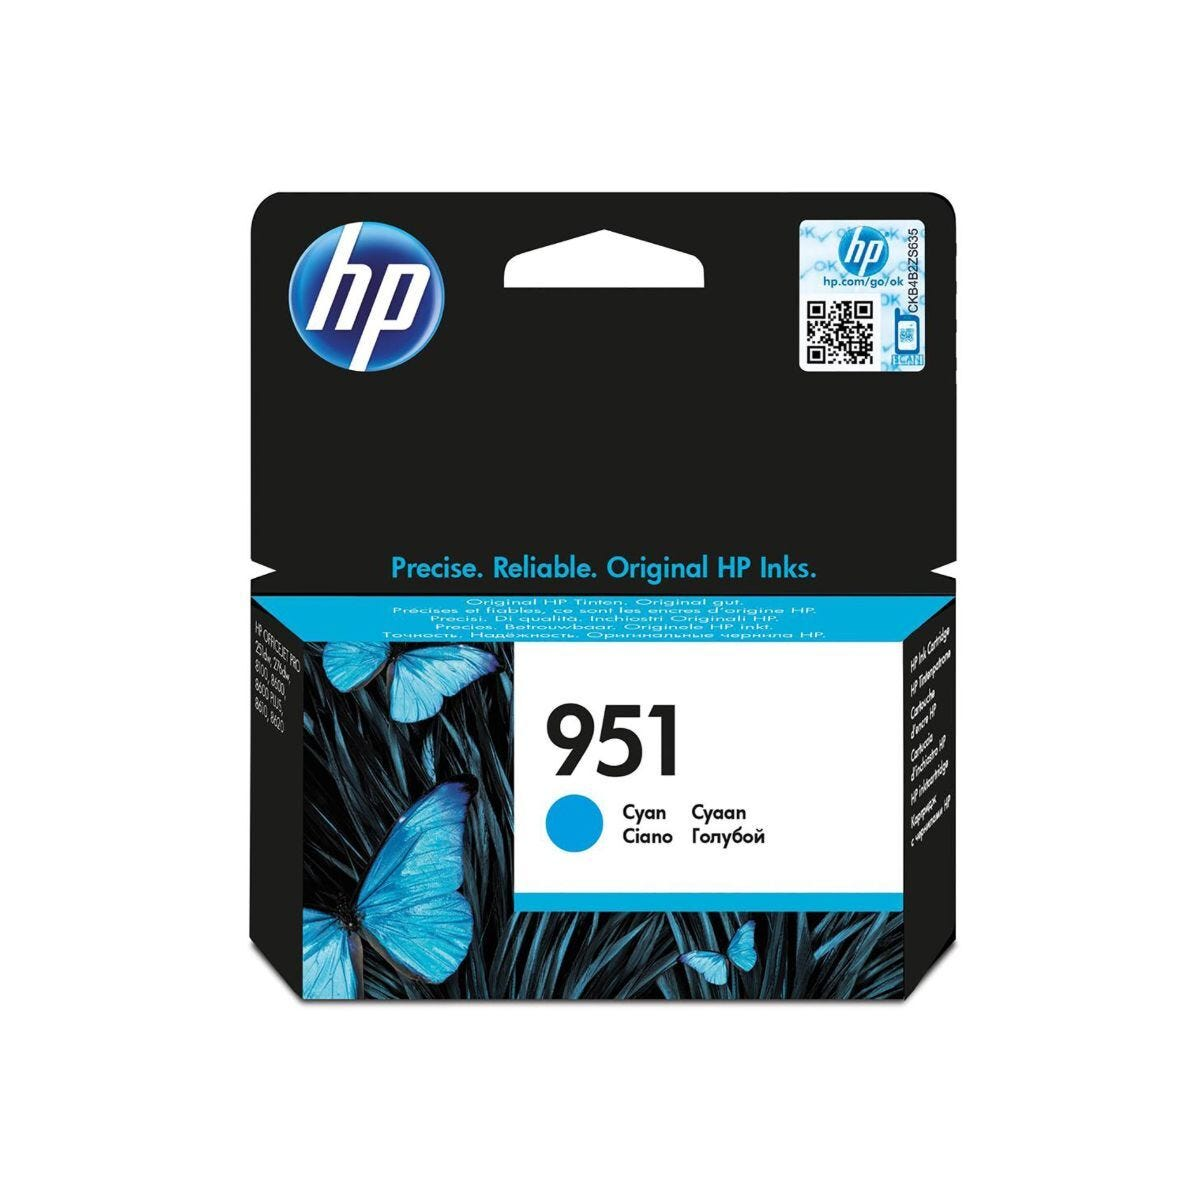 HP 951 Officejet Ink Cyan